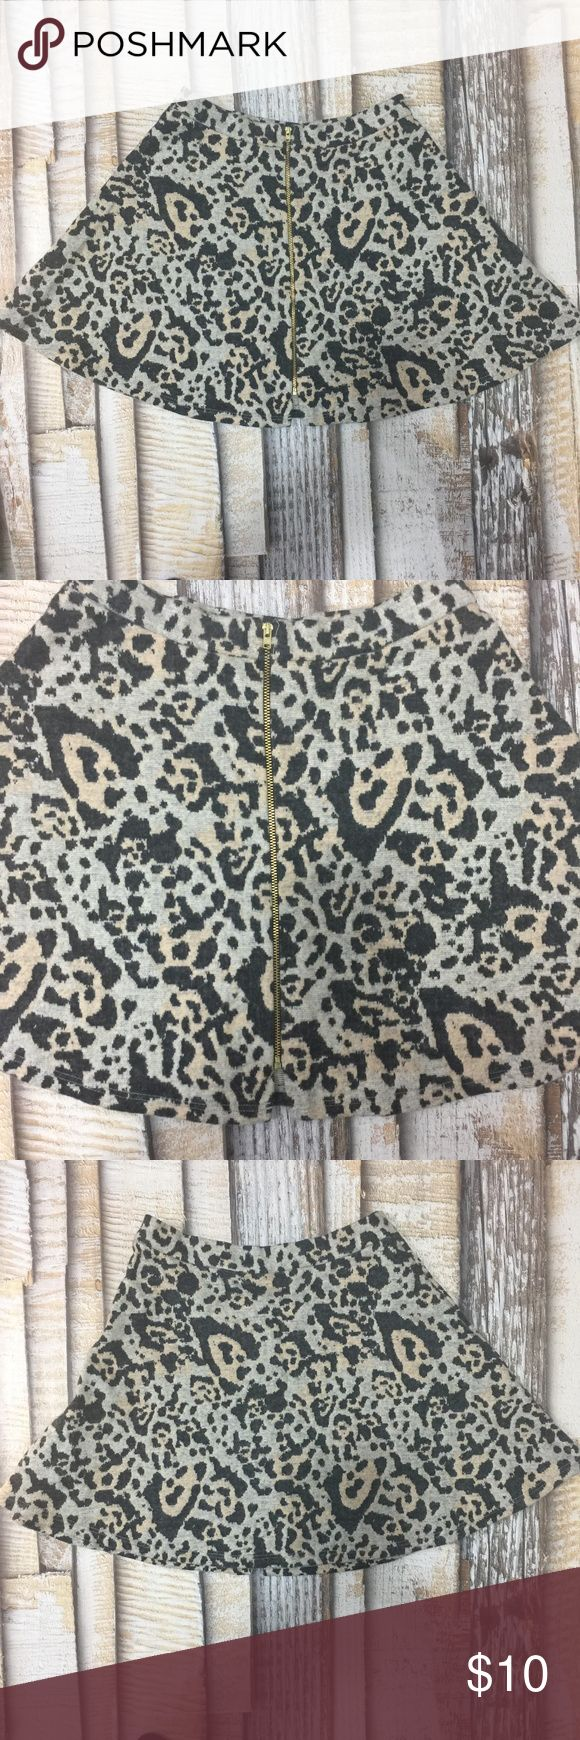 Topshop Zip Thru Animal Print Skirt Size 4 Topshop Size 4 Brown and beige animal print skirt.  Zip thru front.  100% cotton Very nice used condition Measurements waist 13 hip 20 length 16 Topshop Skirts Mini